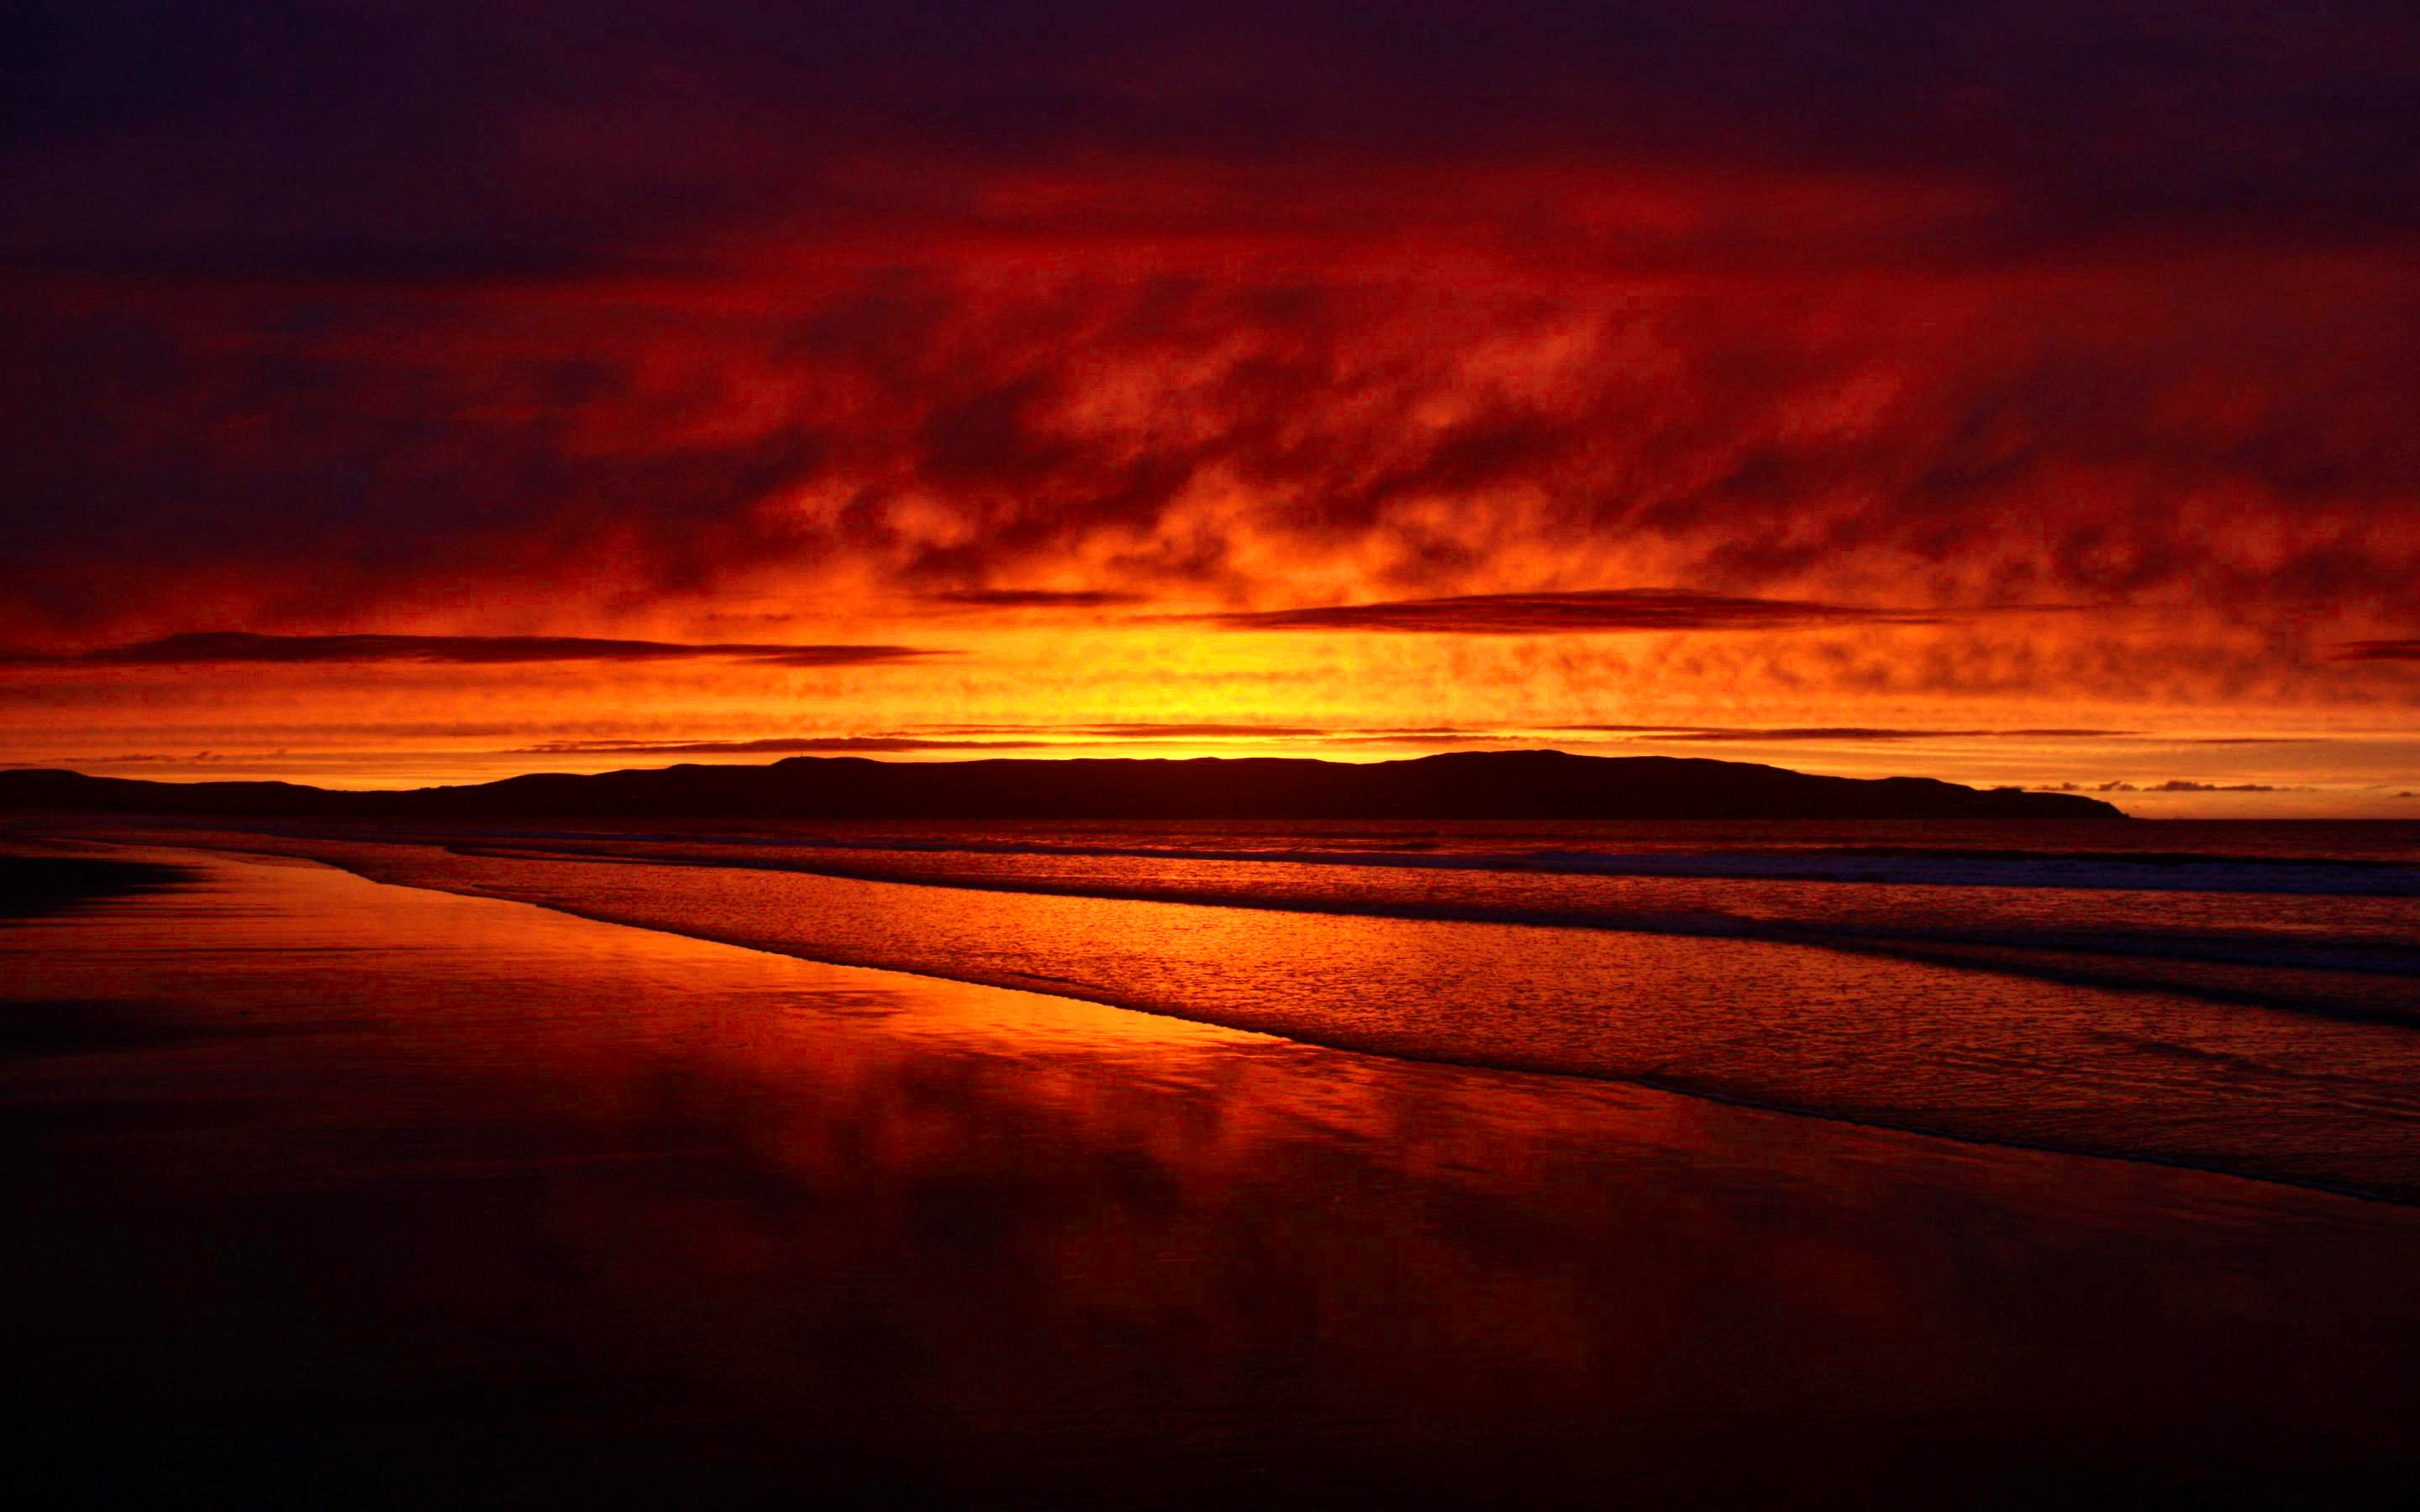 Sunset Wallpaper Desktop 2880x1800